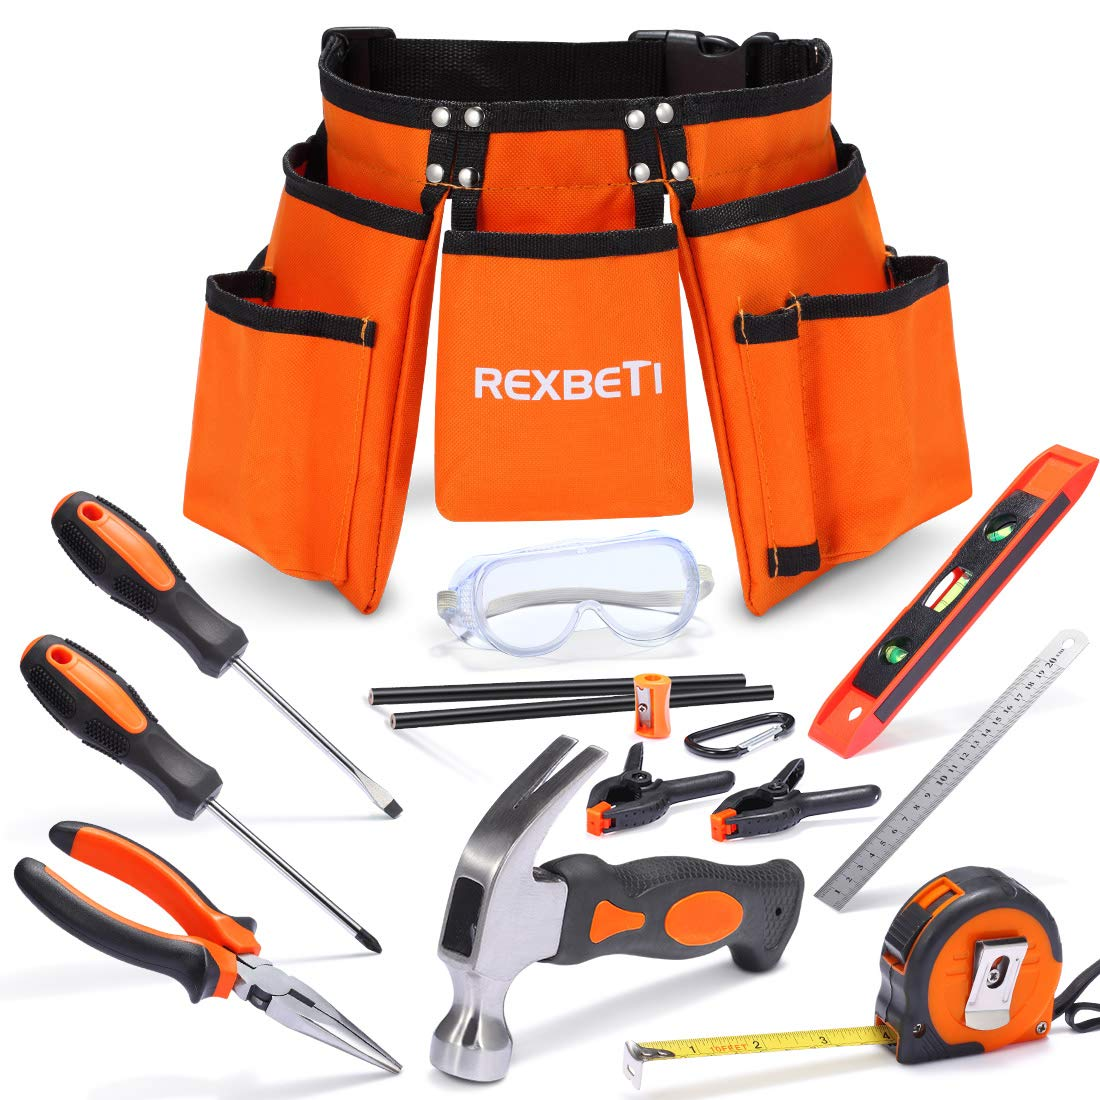 REXBETI 15pcs Young Builder's Tool Set with Real Hand Tools, Reinforced Kids Tool Belt, Waist 20''-32'', Perfect Kids Learning Tool Kit for Home DIY and Woodworking